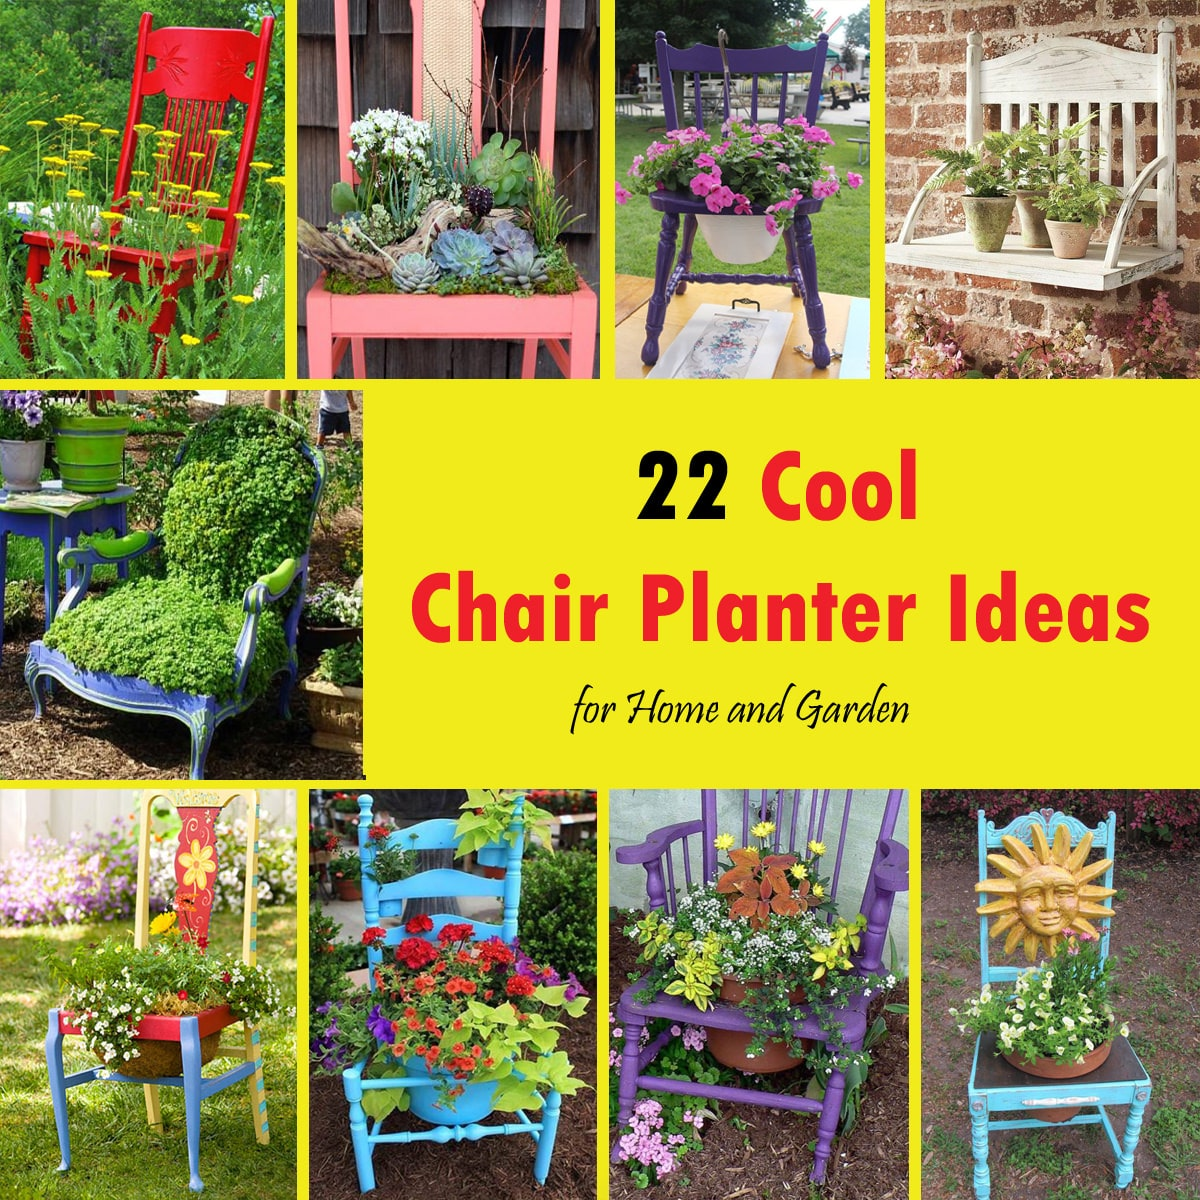 Diy Balcony Garden Ideas: 22 Cool Chair Planter Ideas For Home And Garden